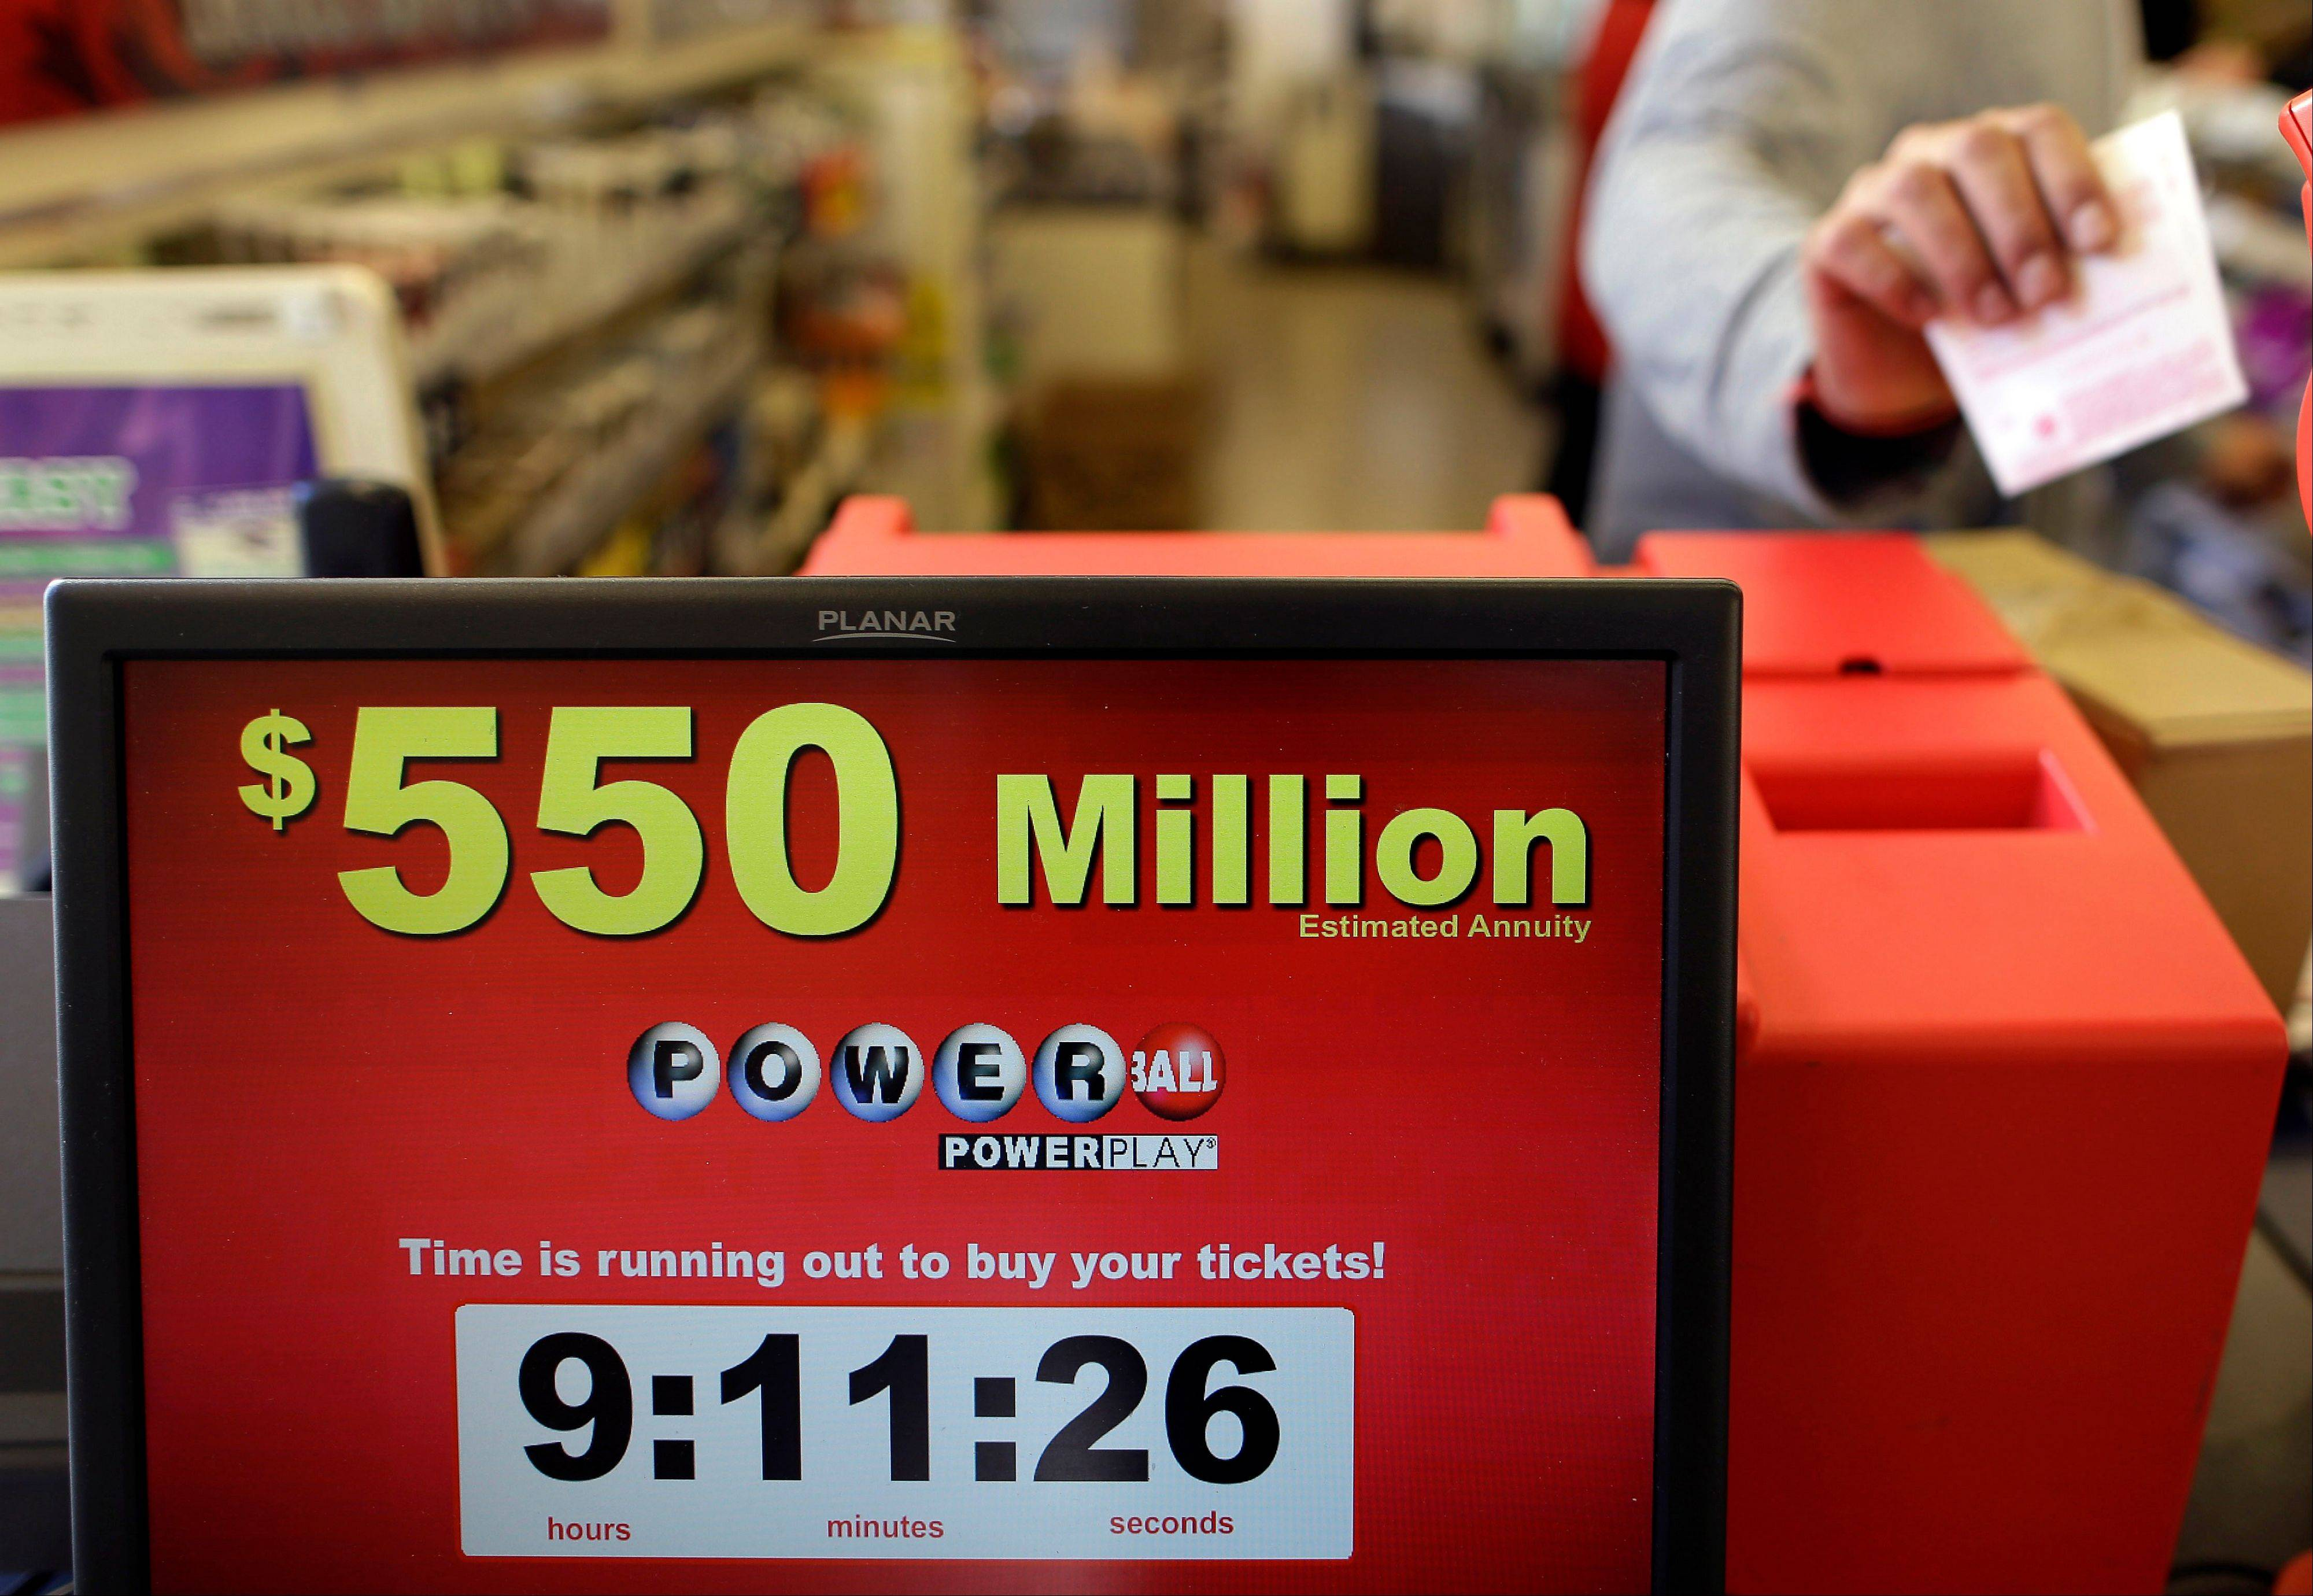 Store clerk Keyur Patel pulls a Powerball ticket dispensed from a machine in a convenience store in Baltimore, Wednesday. There have been no Powerball winners since Oct. 6, and the jackpot has grown into the second highest in lottery history, behind only the $656 million Mega Millions prize in March.